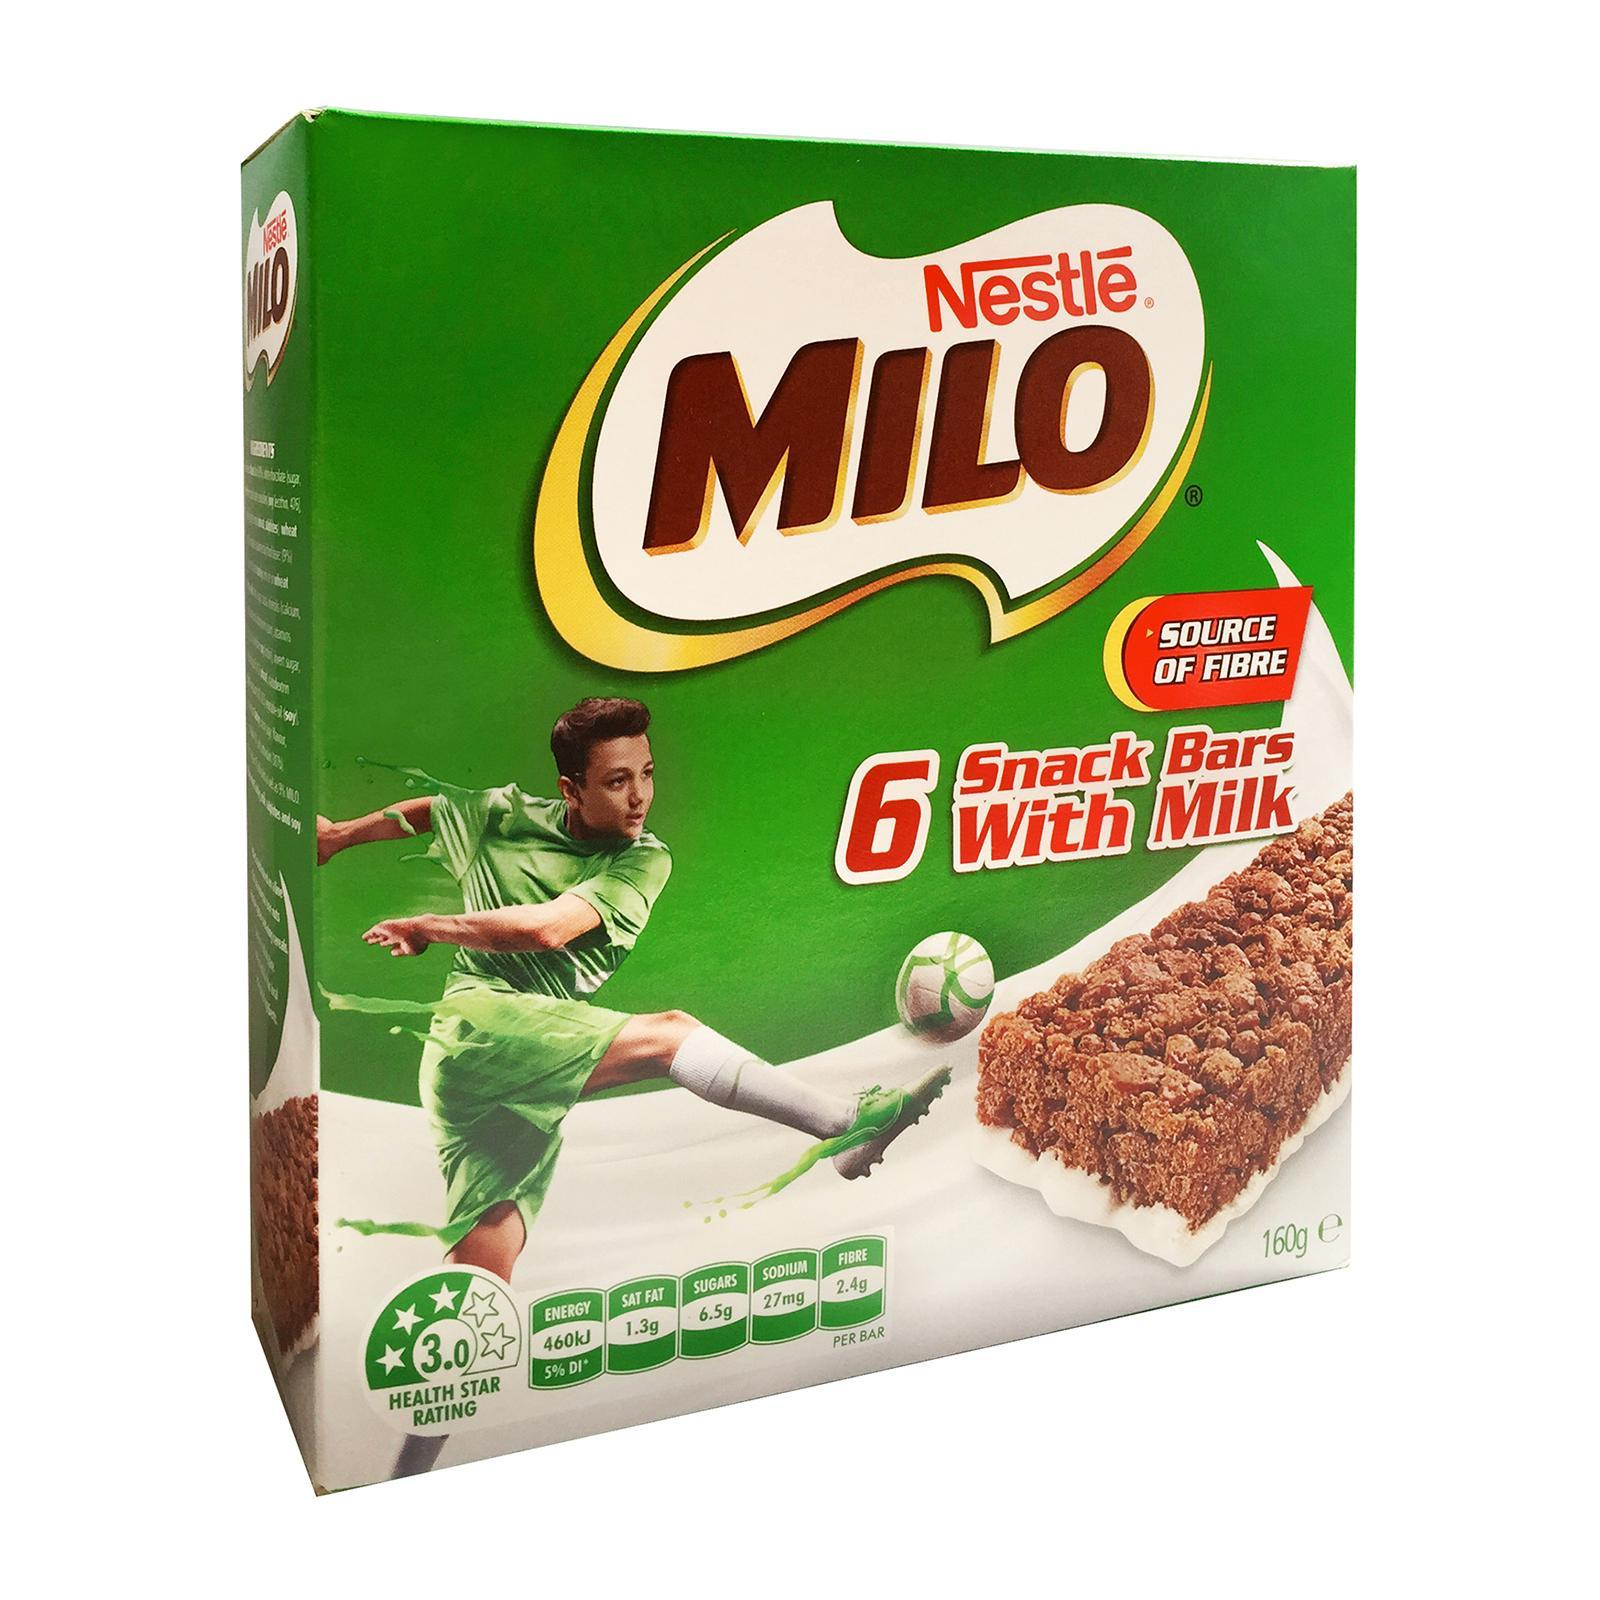 MILO Snack Bars With Milk (6 Pack) image